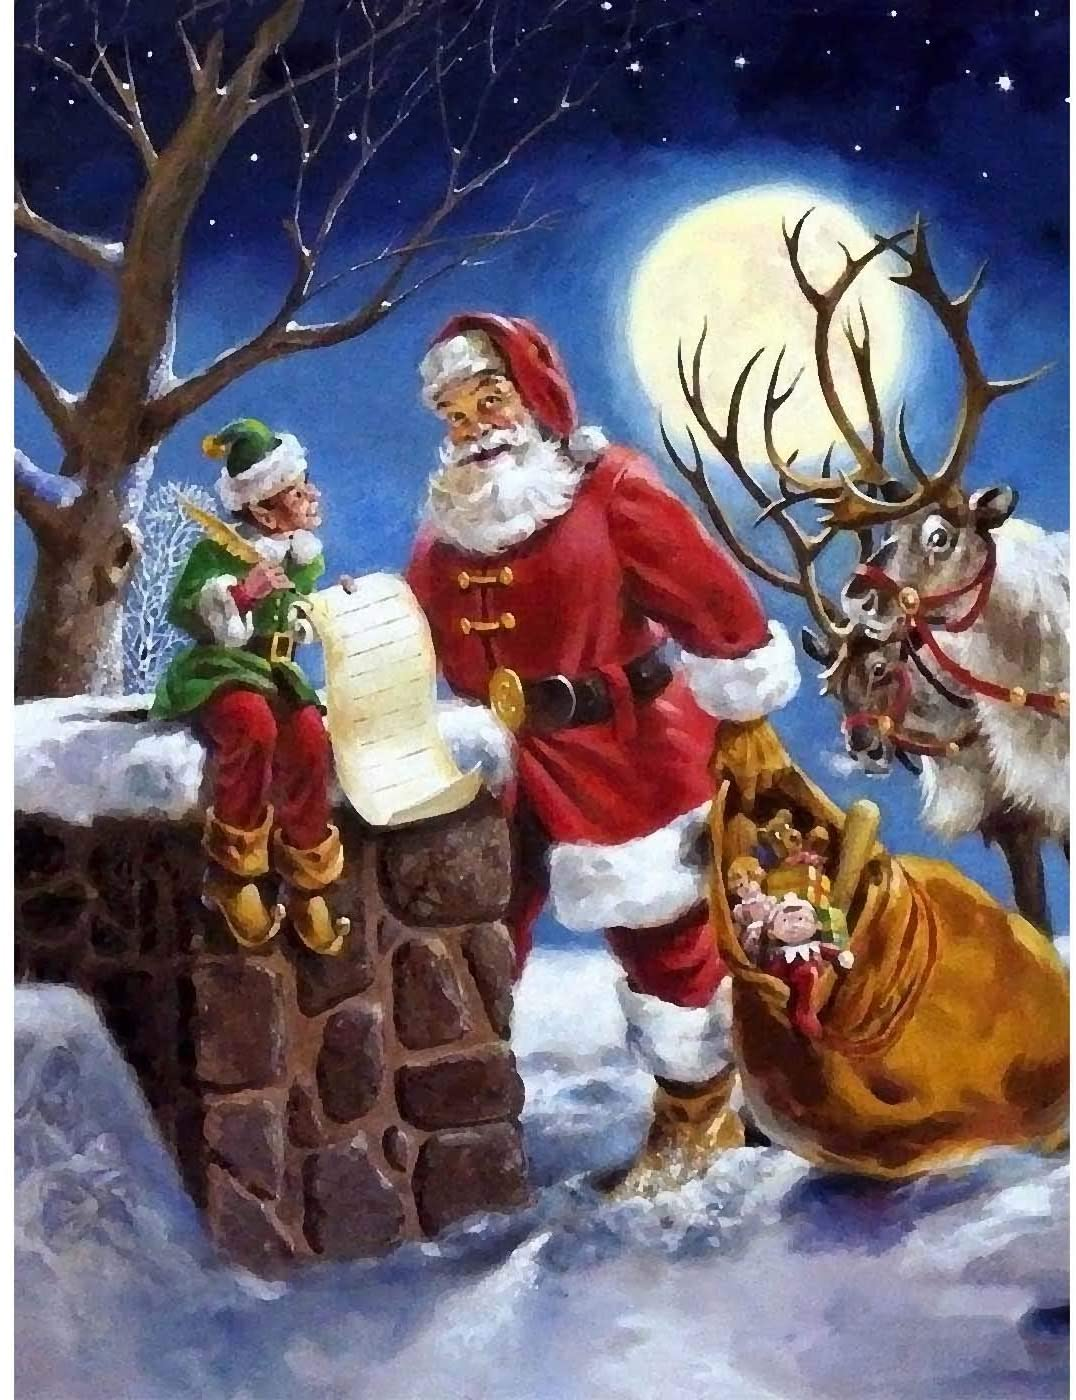 Kaliosy 5D Diamond Painting Santa and The Moose on Moonlit Night by Number Kits Paint with Diamonds Art, DIY Crystal Craft Full Drill Cross Stitch Decoration 12X16inch (X26840)